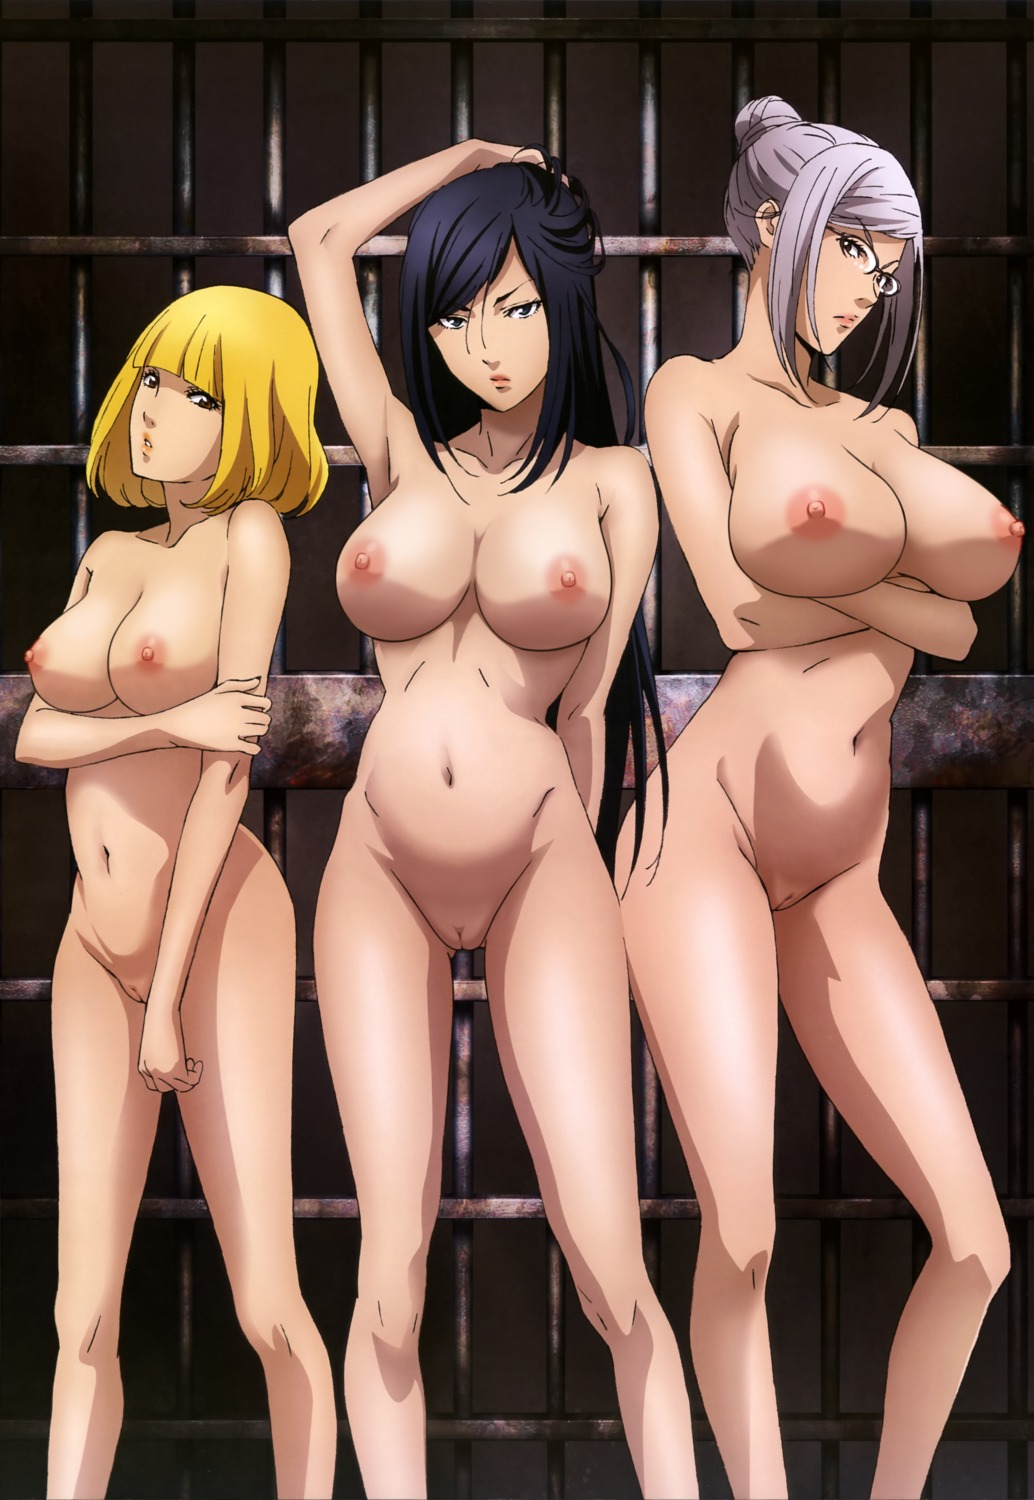 kurihara_mari megane midorikawa_hana naked nipples photoshop prison_school pussy shiraki_meiko uncensored